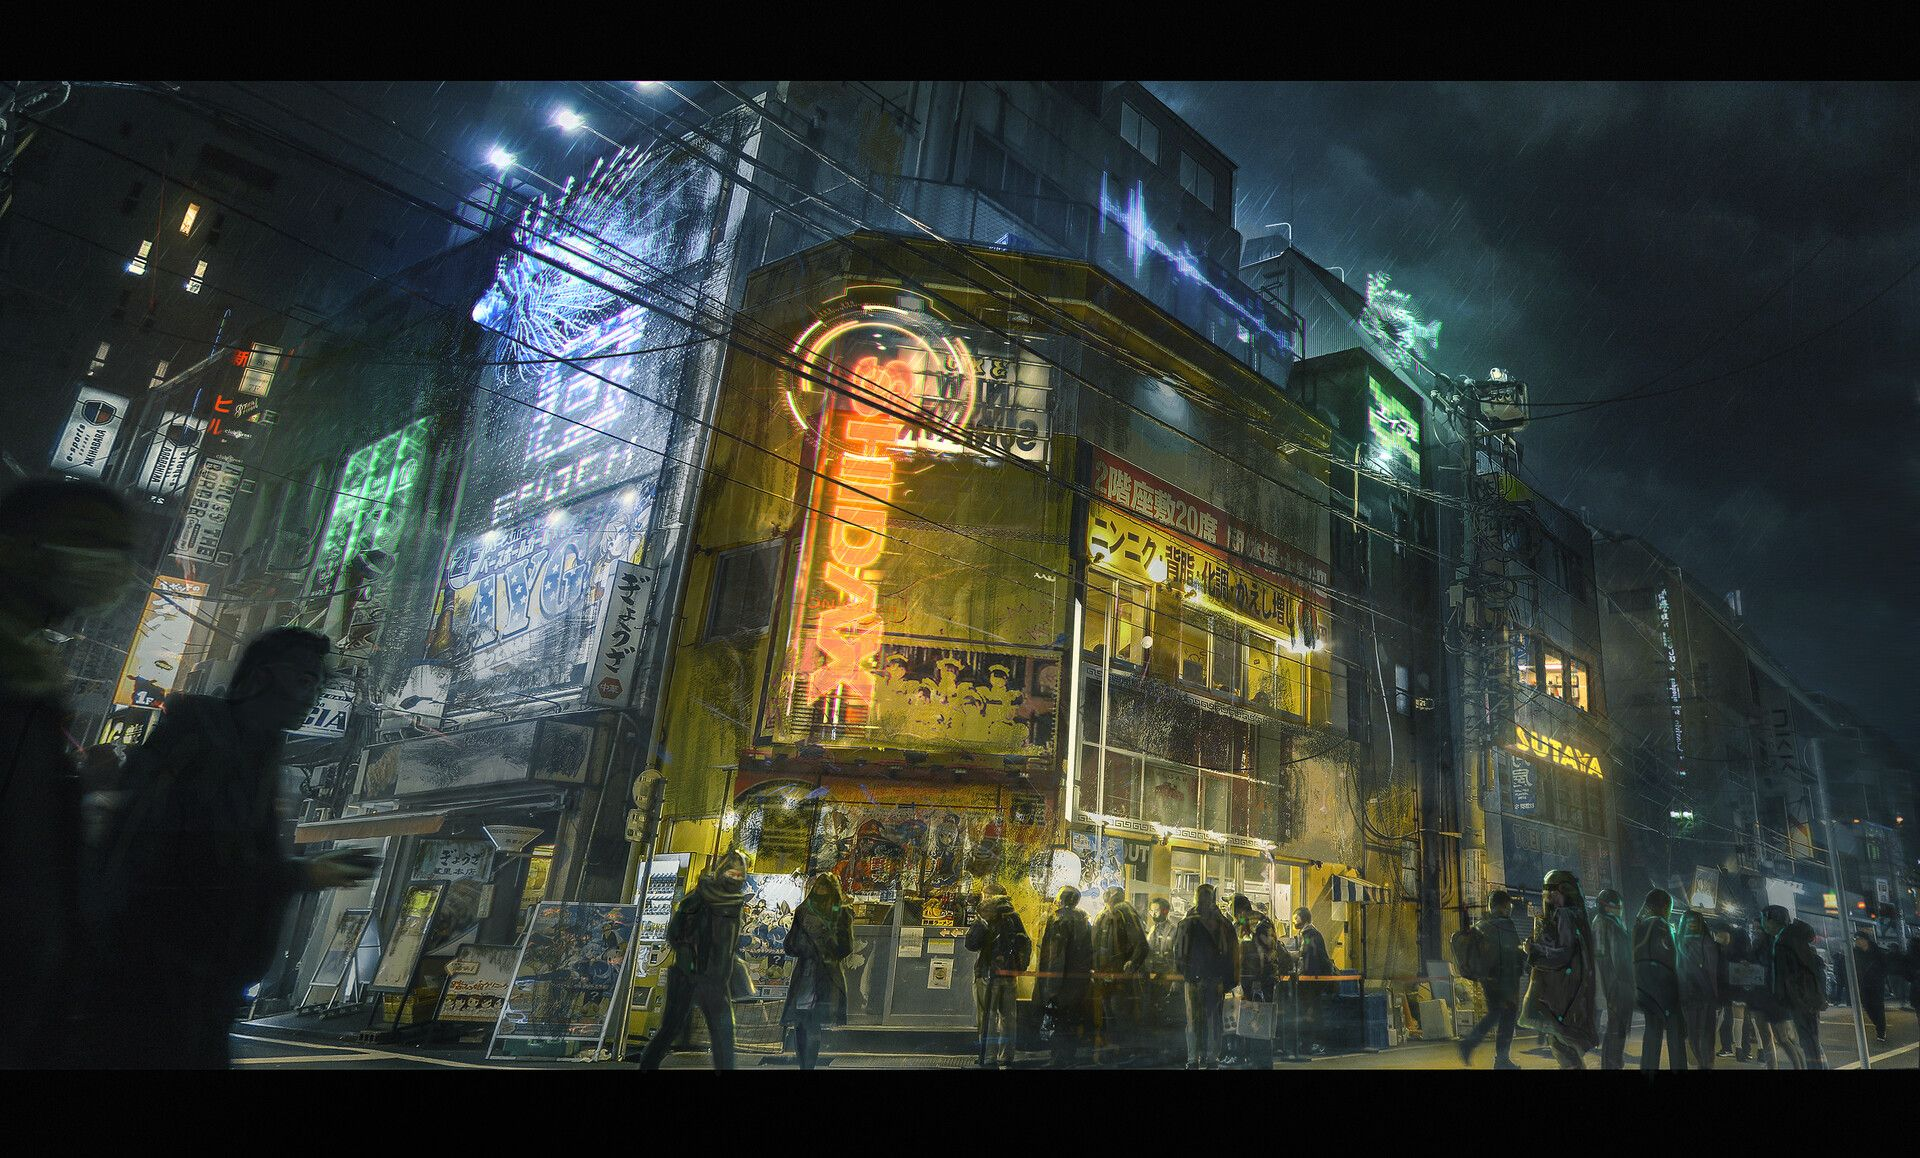 Ep0ch by job menting artwork concept art painting